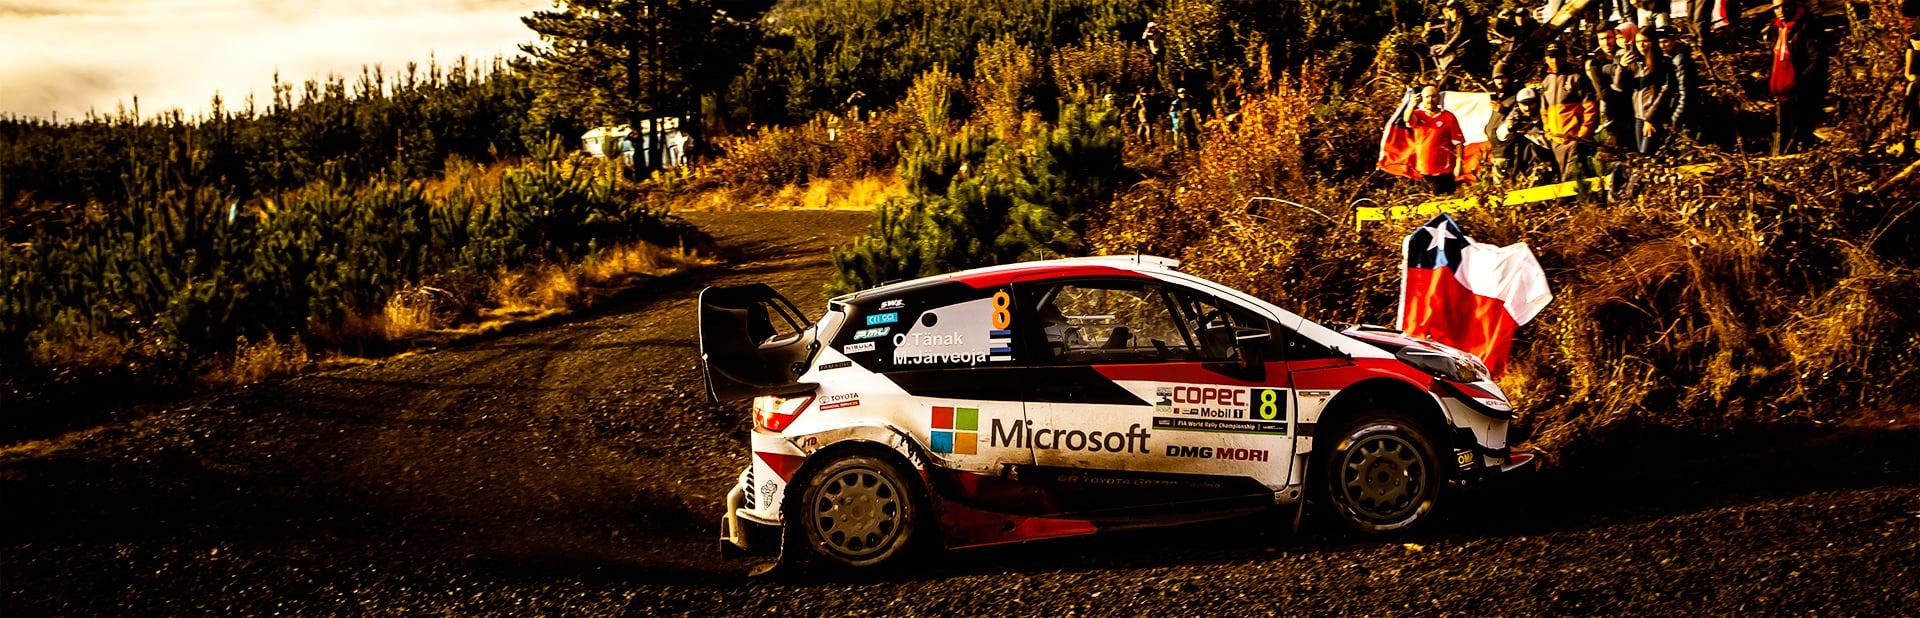 Rally Chile: Day 3 Tänak and the Toyota Yaris WRC conquer a new rally in Chile